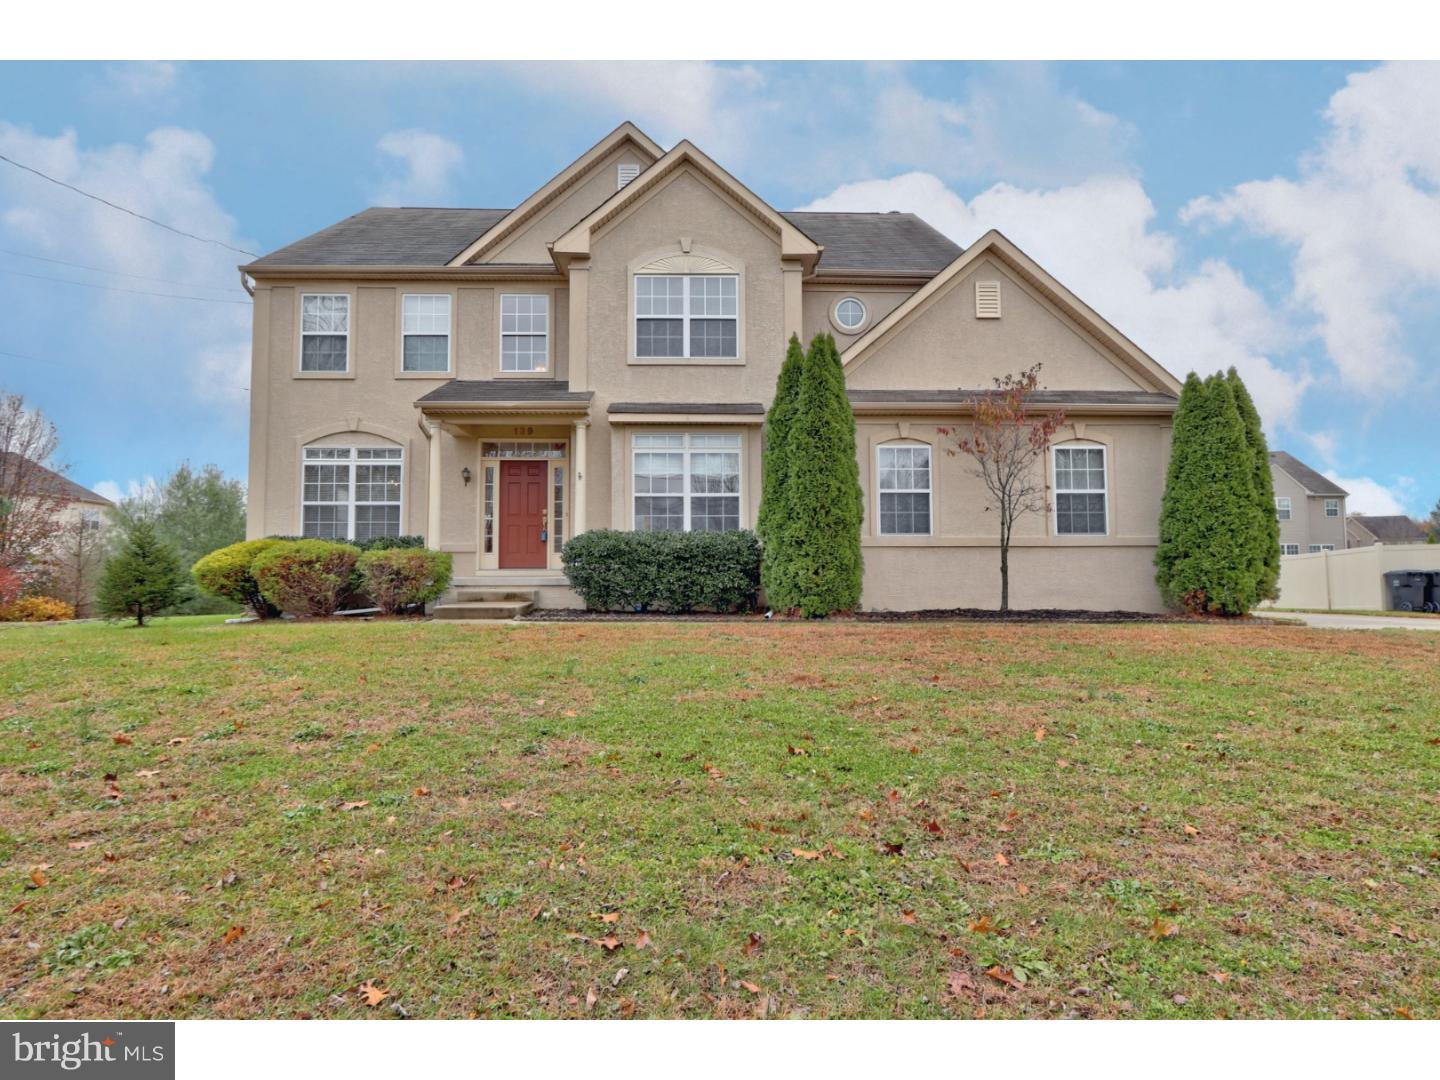 Single Family Home for Sale at 139 NEW FREEDOM Road Berlin Boro, New Jersey 08009 United States